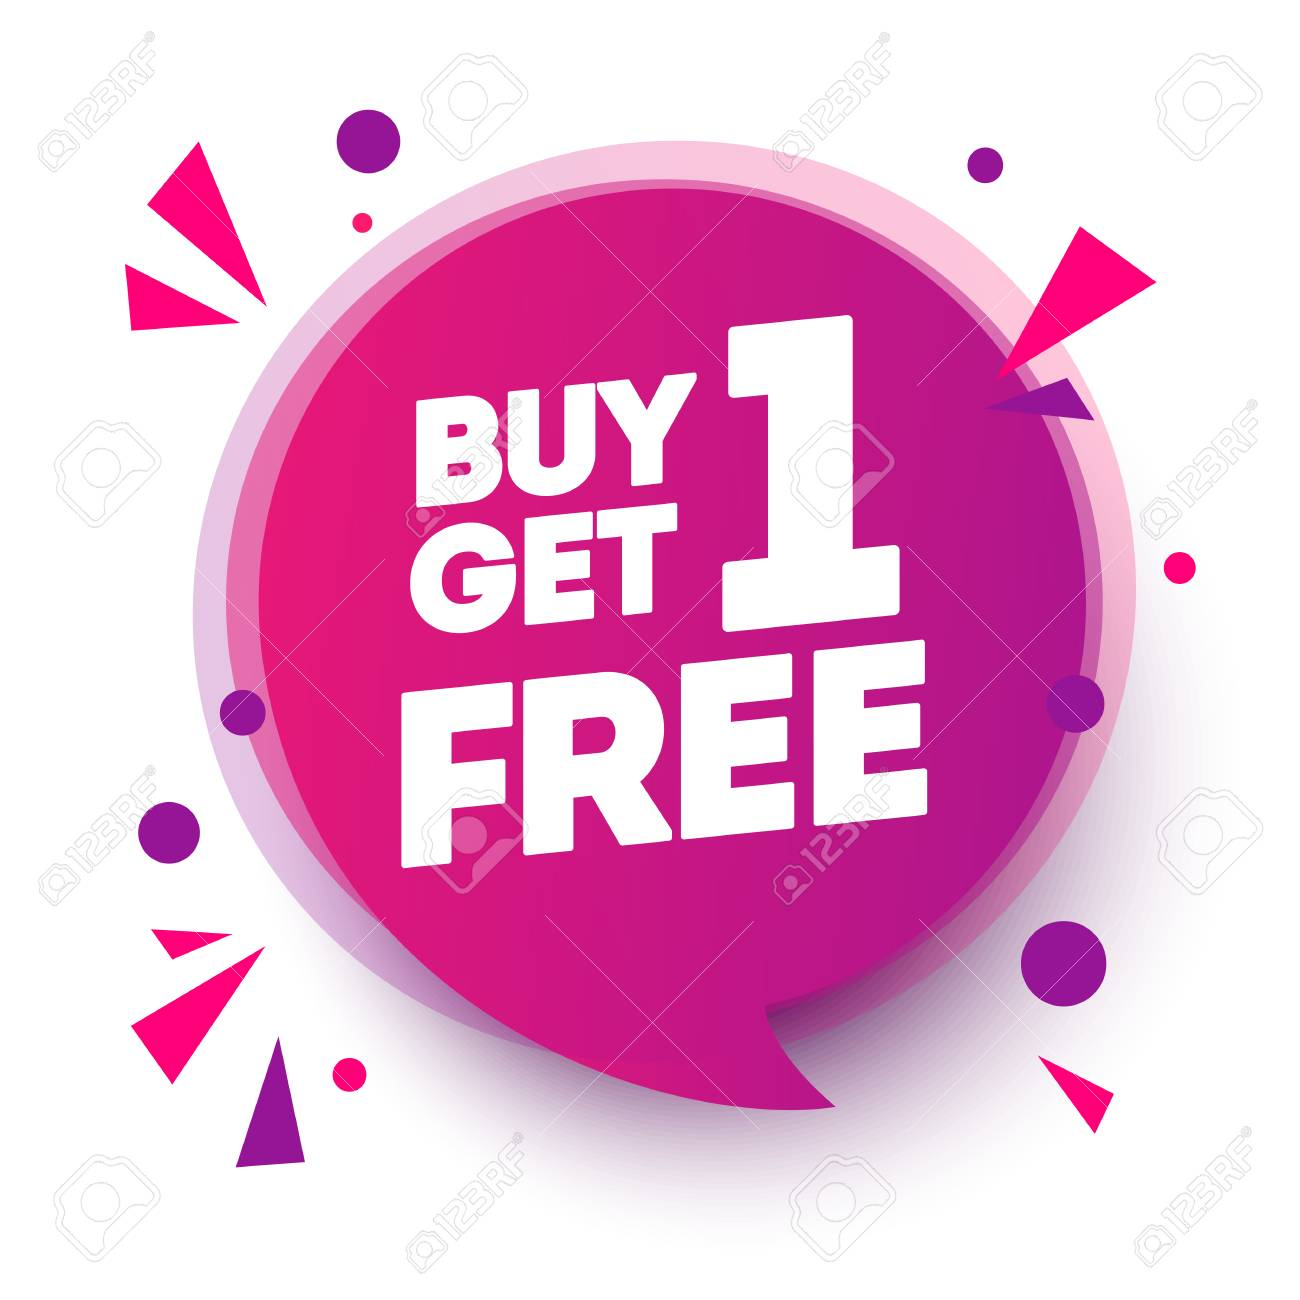 Vector Illustration Buy 1 Get 1 Free, Sale Tag, Banner Design Speech Bubble Template - 115662814